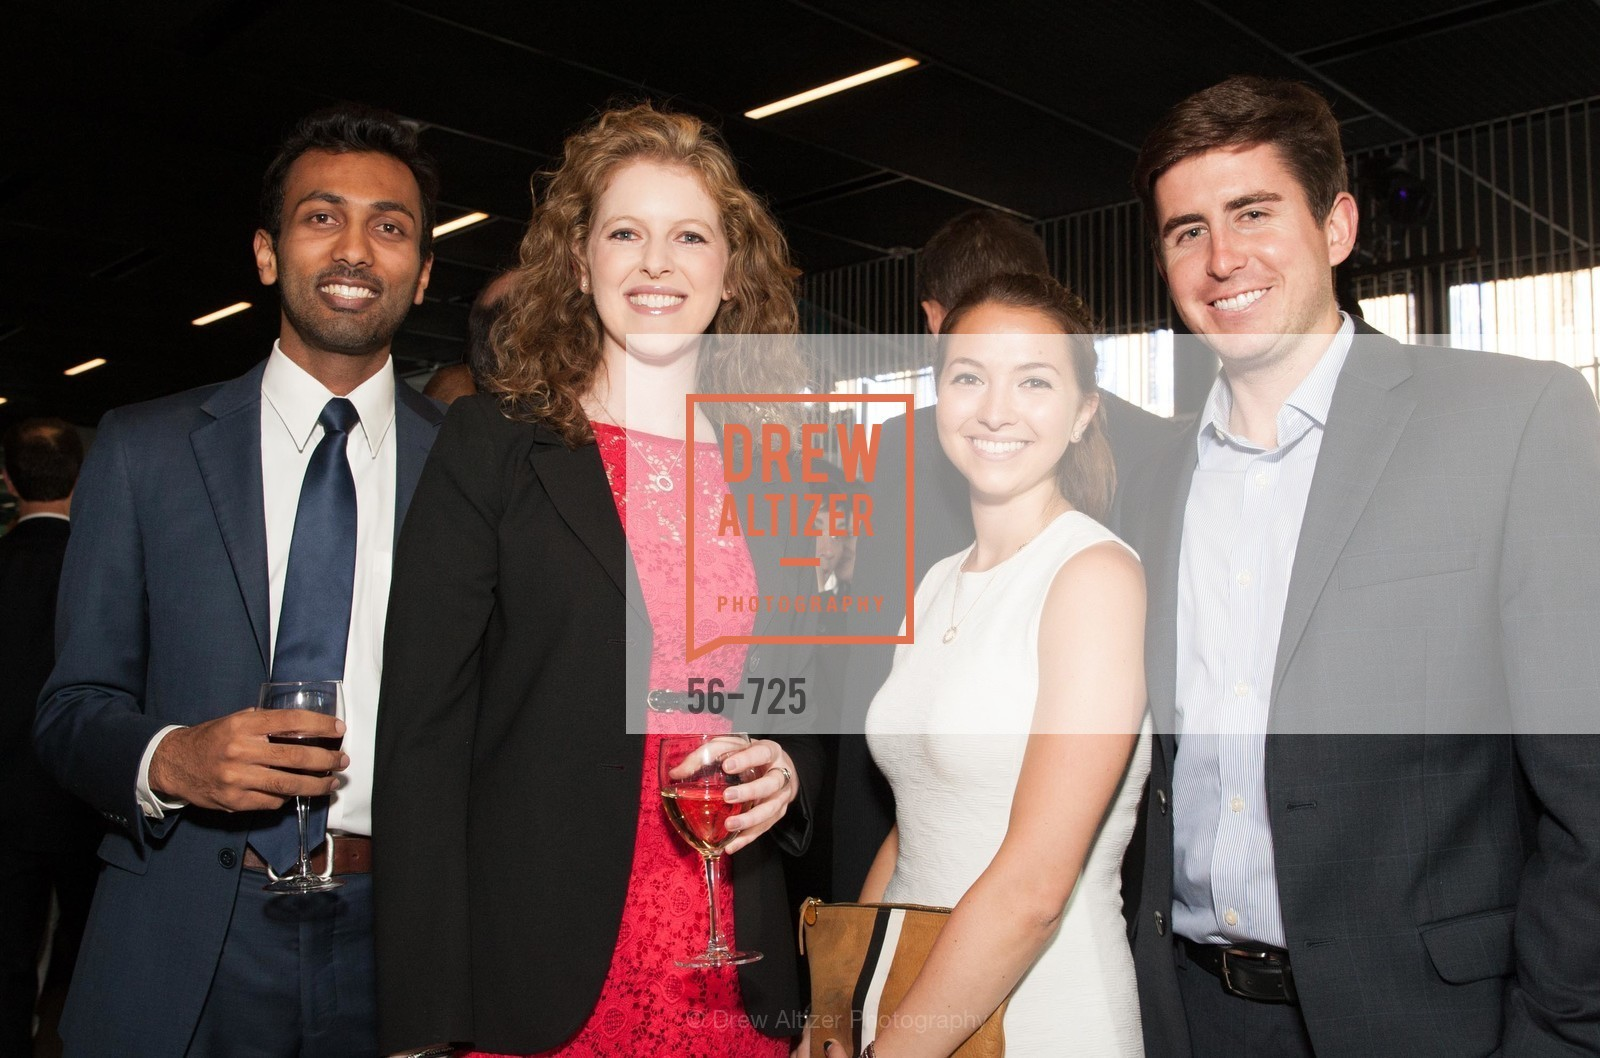 Sachin Jane, Rachel Steyer, Michelle Steyer, David Carr, COMMON SENSE Media Awards 2015, US, May 13th, 2015,Drew Altizer, Drew Altizer Photography, full-service agency, private events, San Francisco photographer, photographer california